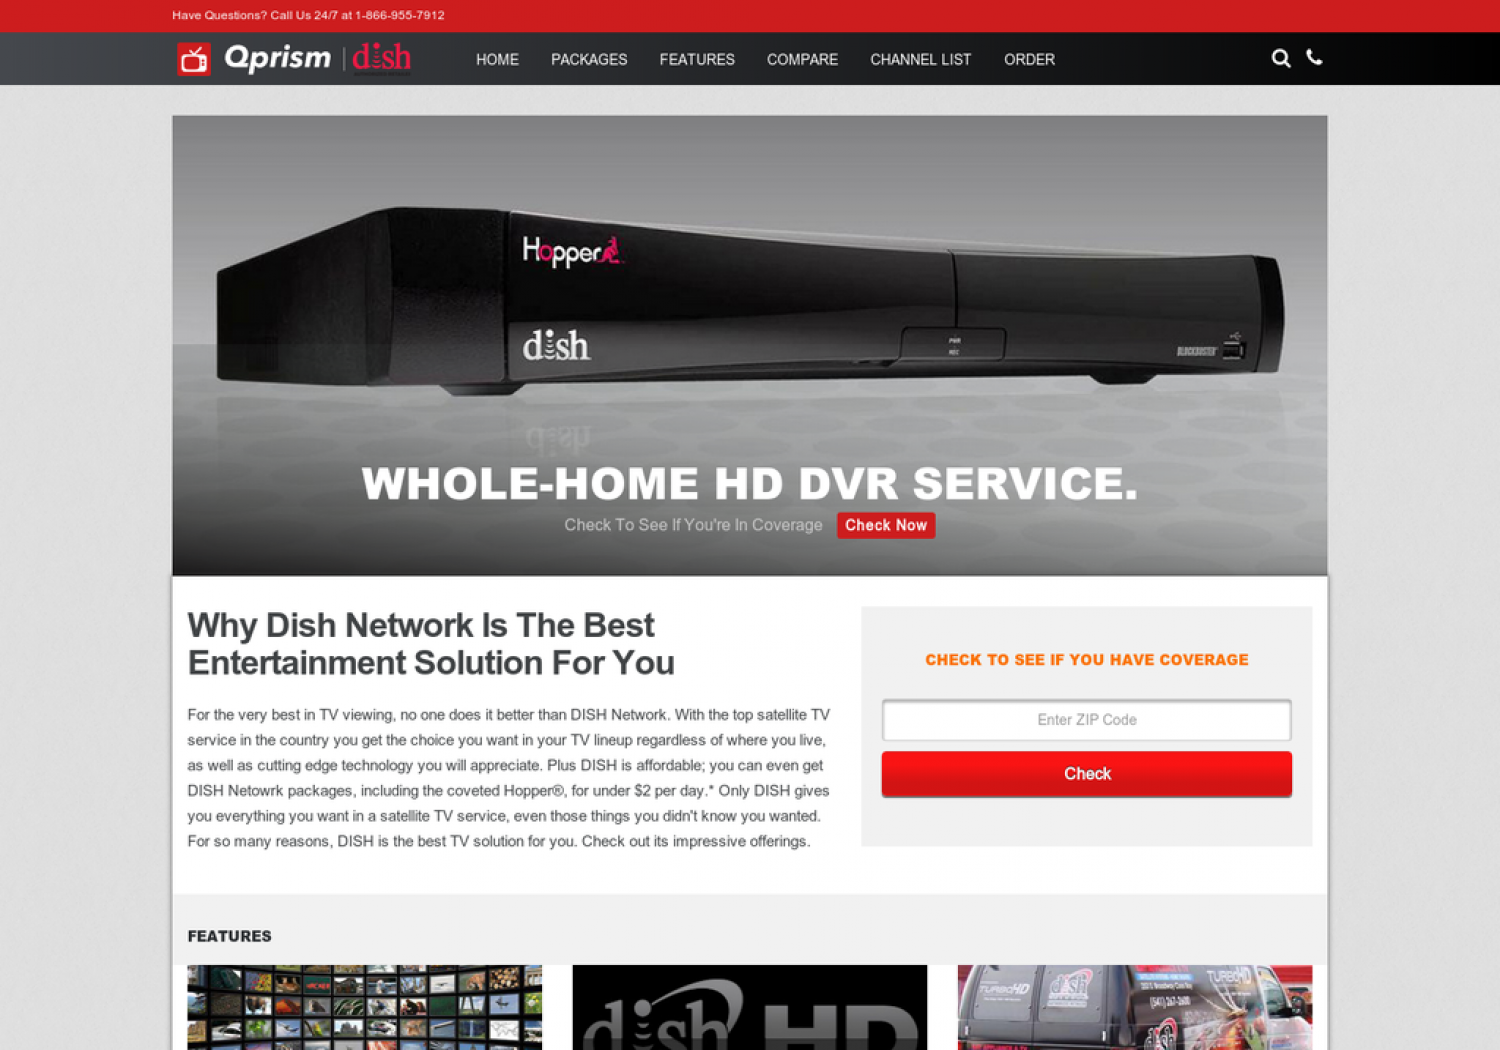 QPRISM DISH NETWORK WEBSITE Infographic